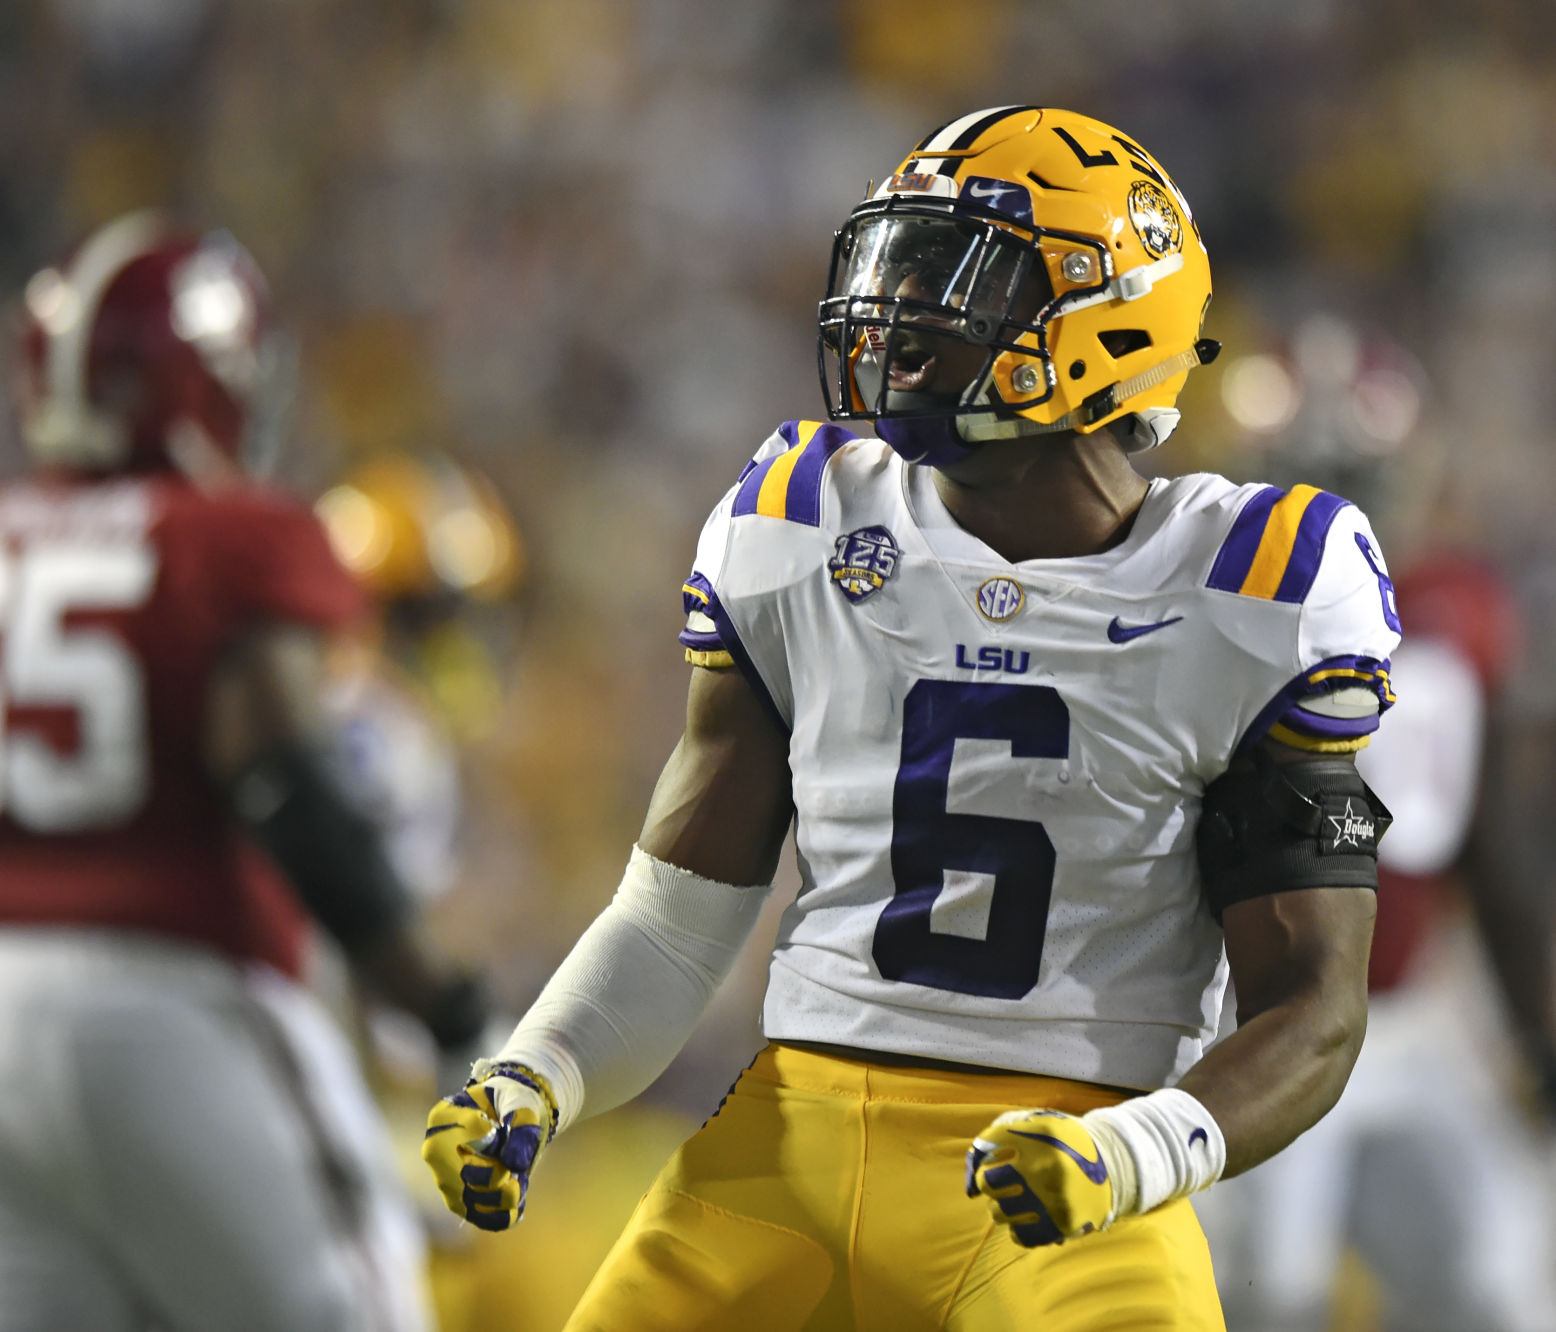 LSU opens the season against Georgia Southern this weekend; What ...